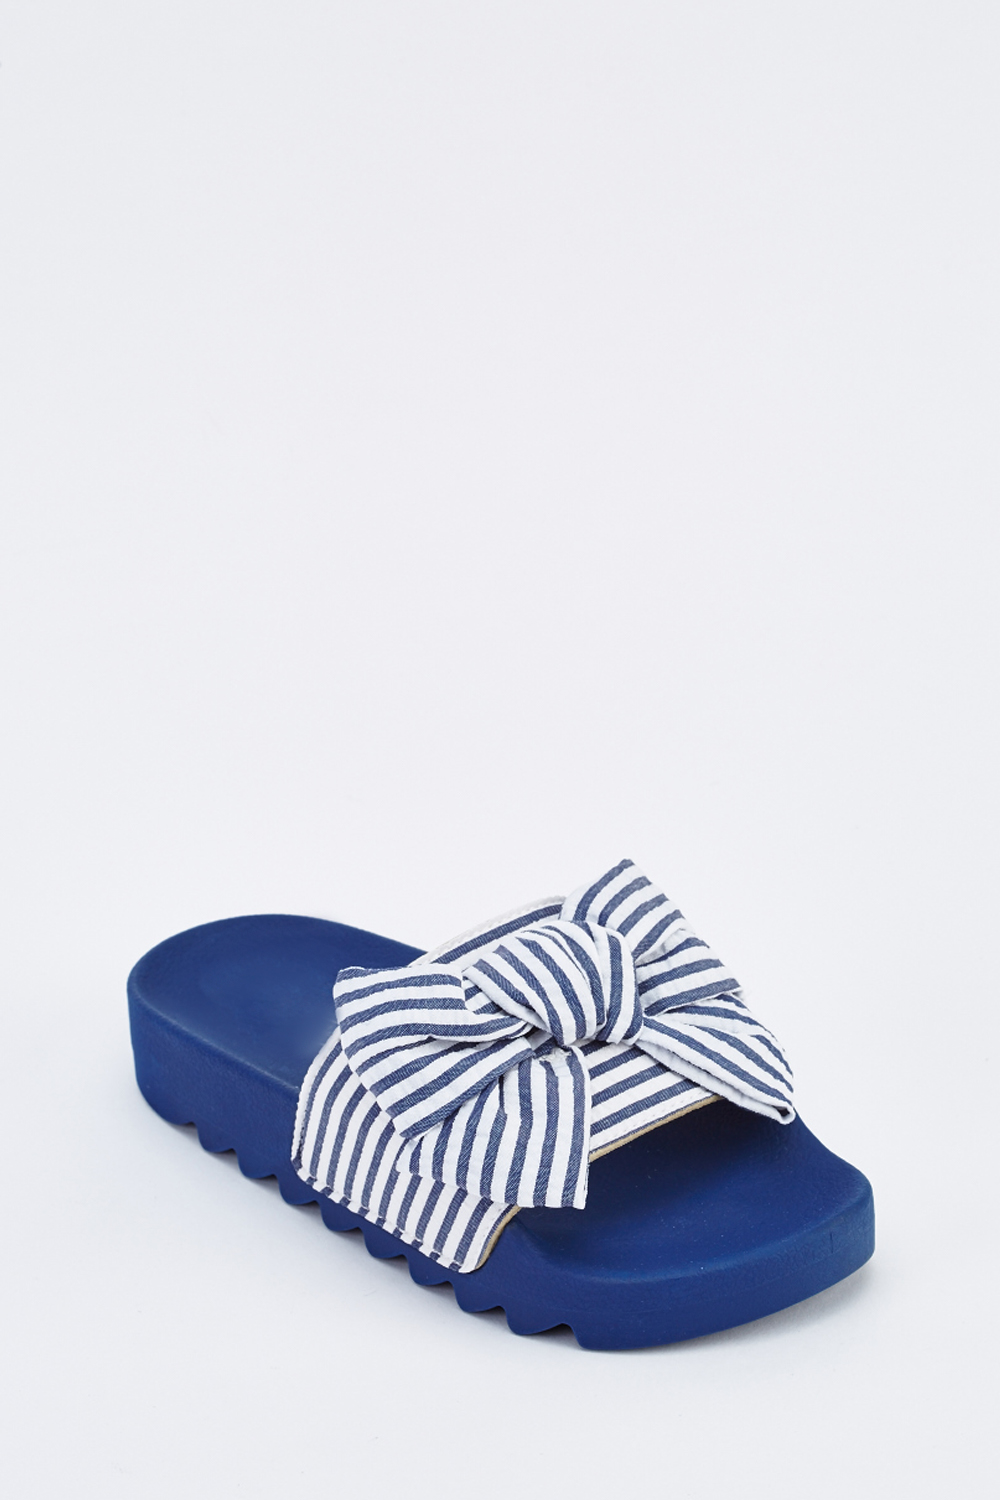 8a71afed0 Textured Striped Bow Sliders - Just £5